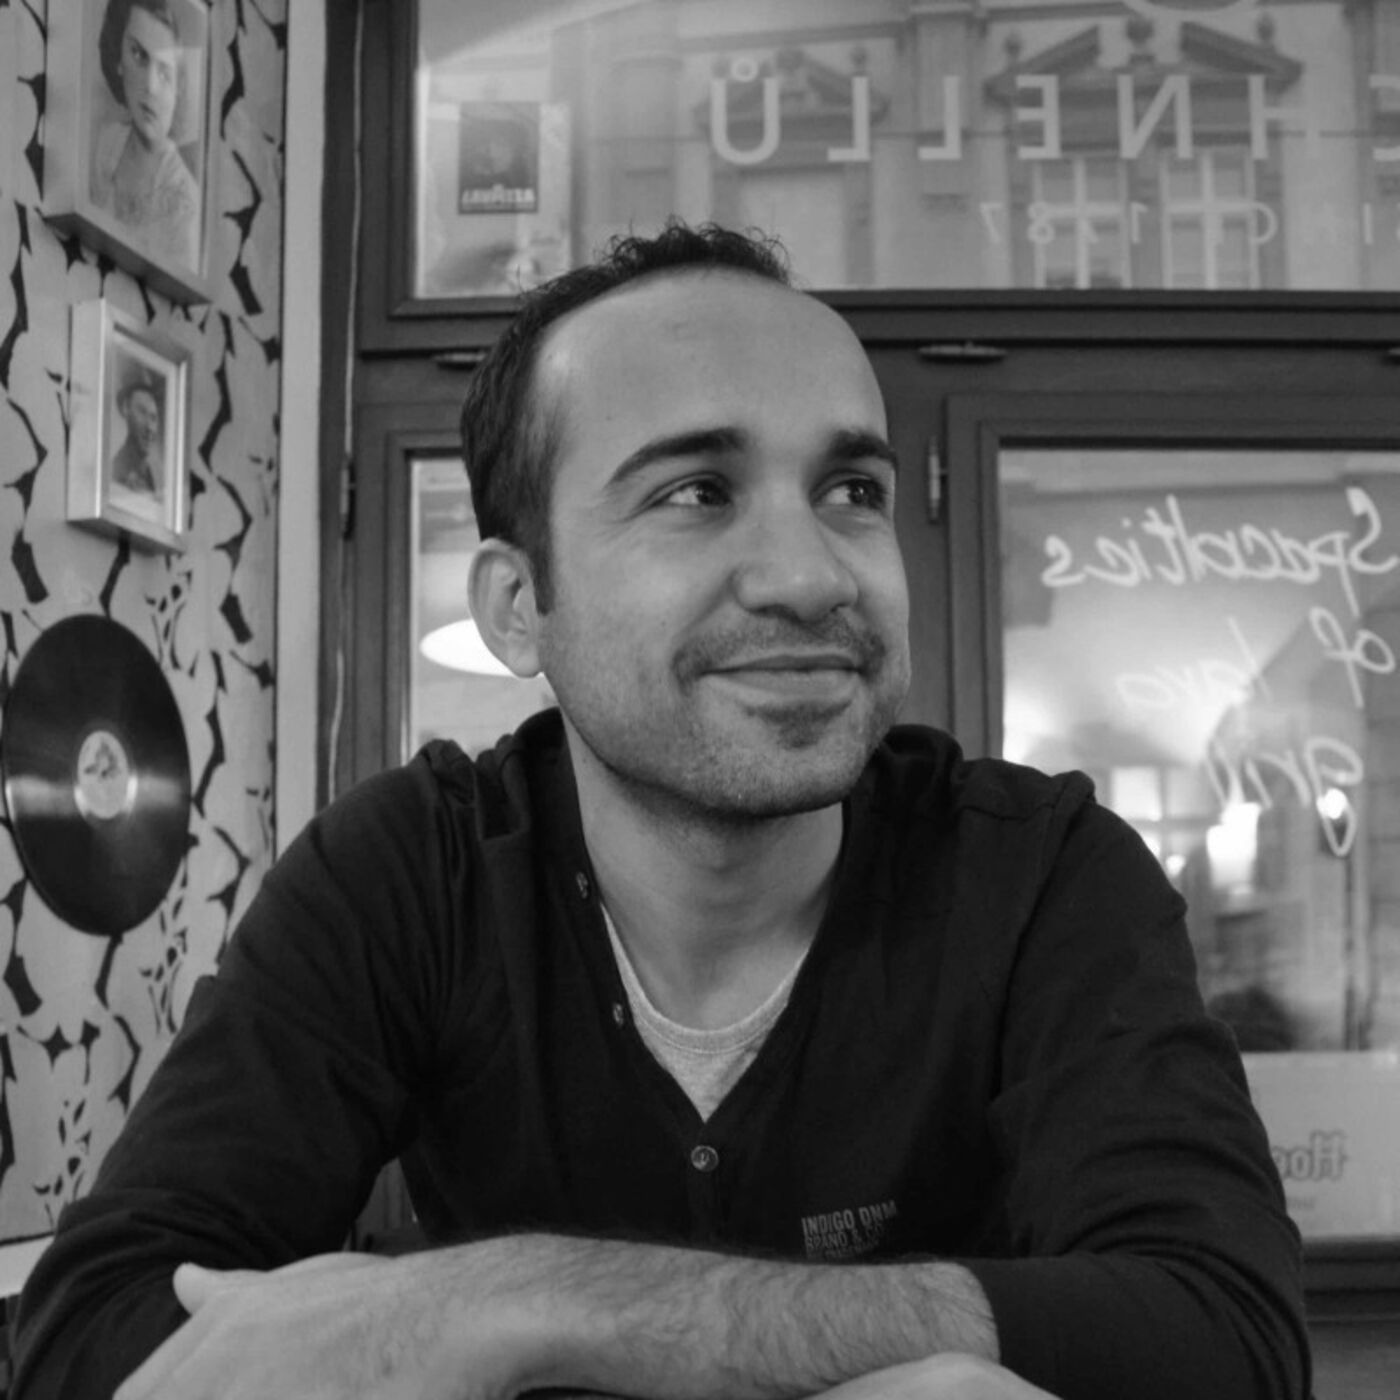 EU Tour #25 Product Roadmaps and being a founder (in Berlin) with Balach Hussain